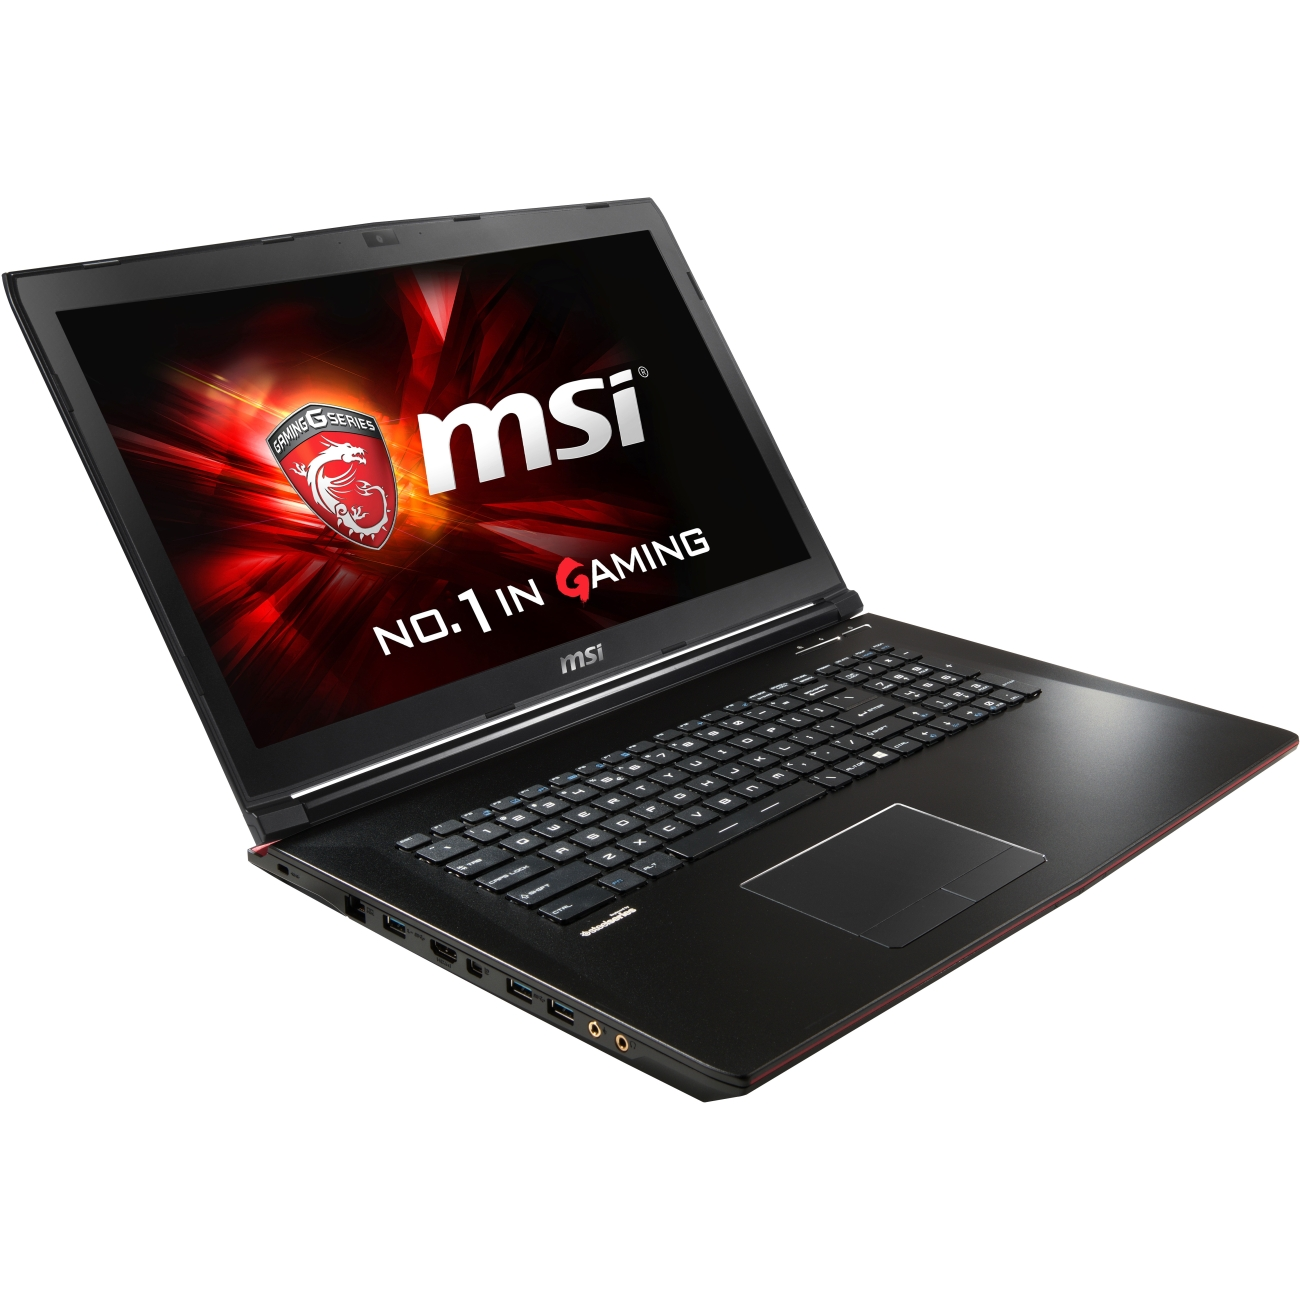 "Msi GP72 Leopard Pro-401 17.3"" LCD Notebook - Intel Core ..."